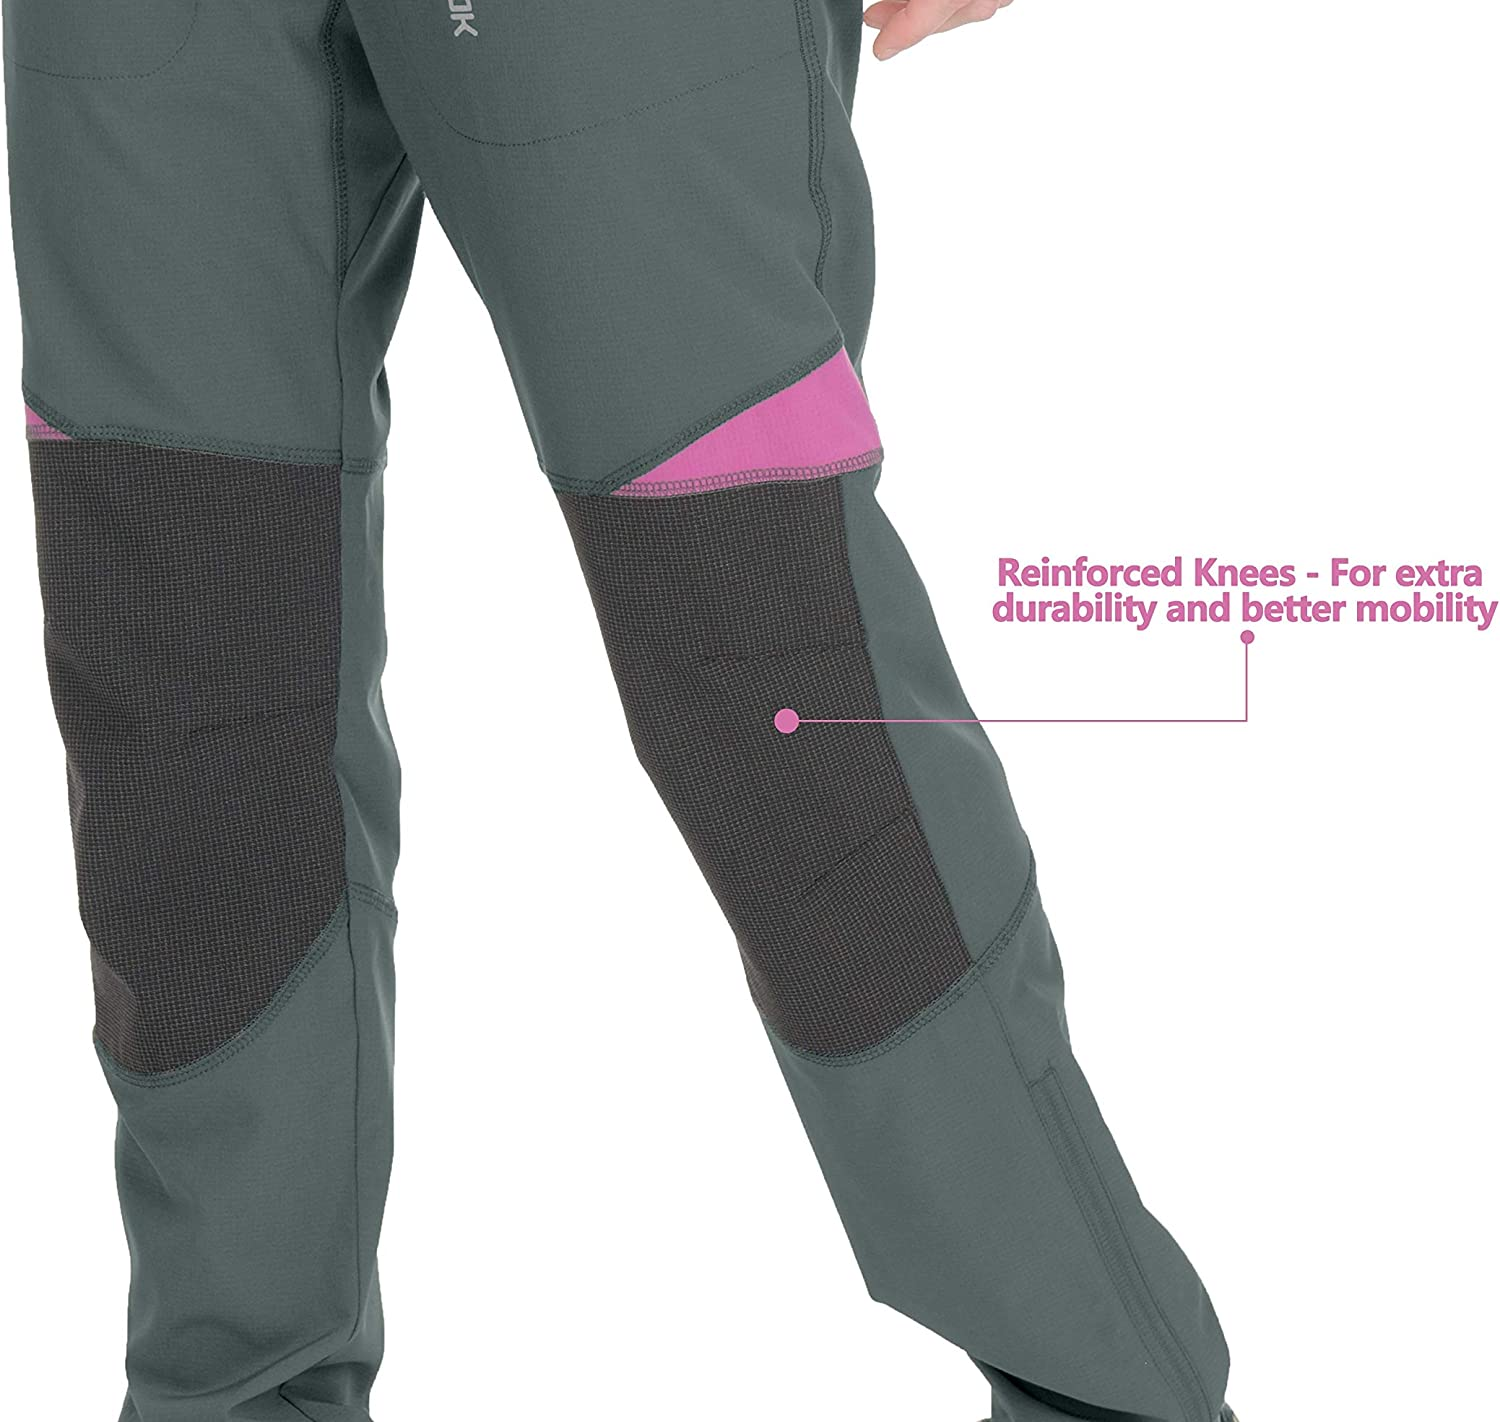 Little Donkey Andy Womens Lightweight Quick Dry Hiking Pants Reinforced Knees UPF 50 for Mountain Climbing Camping